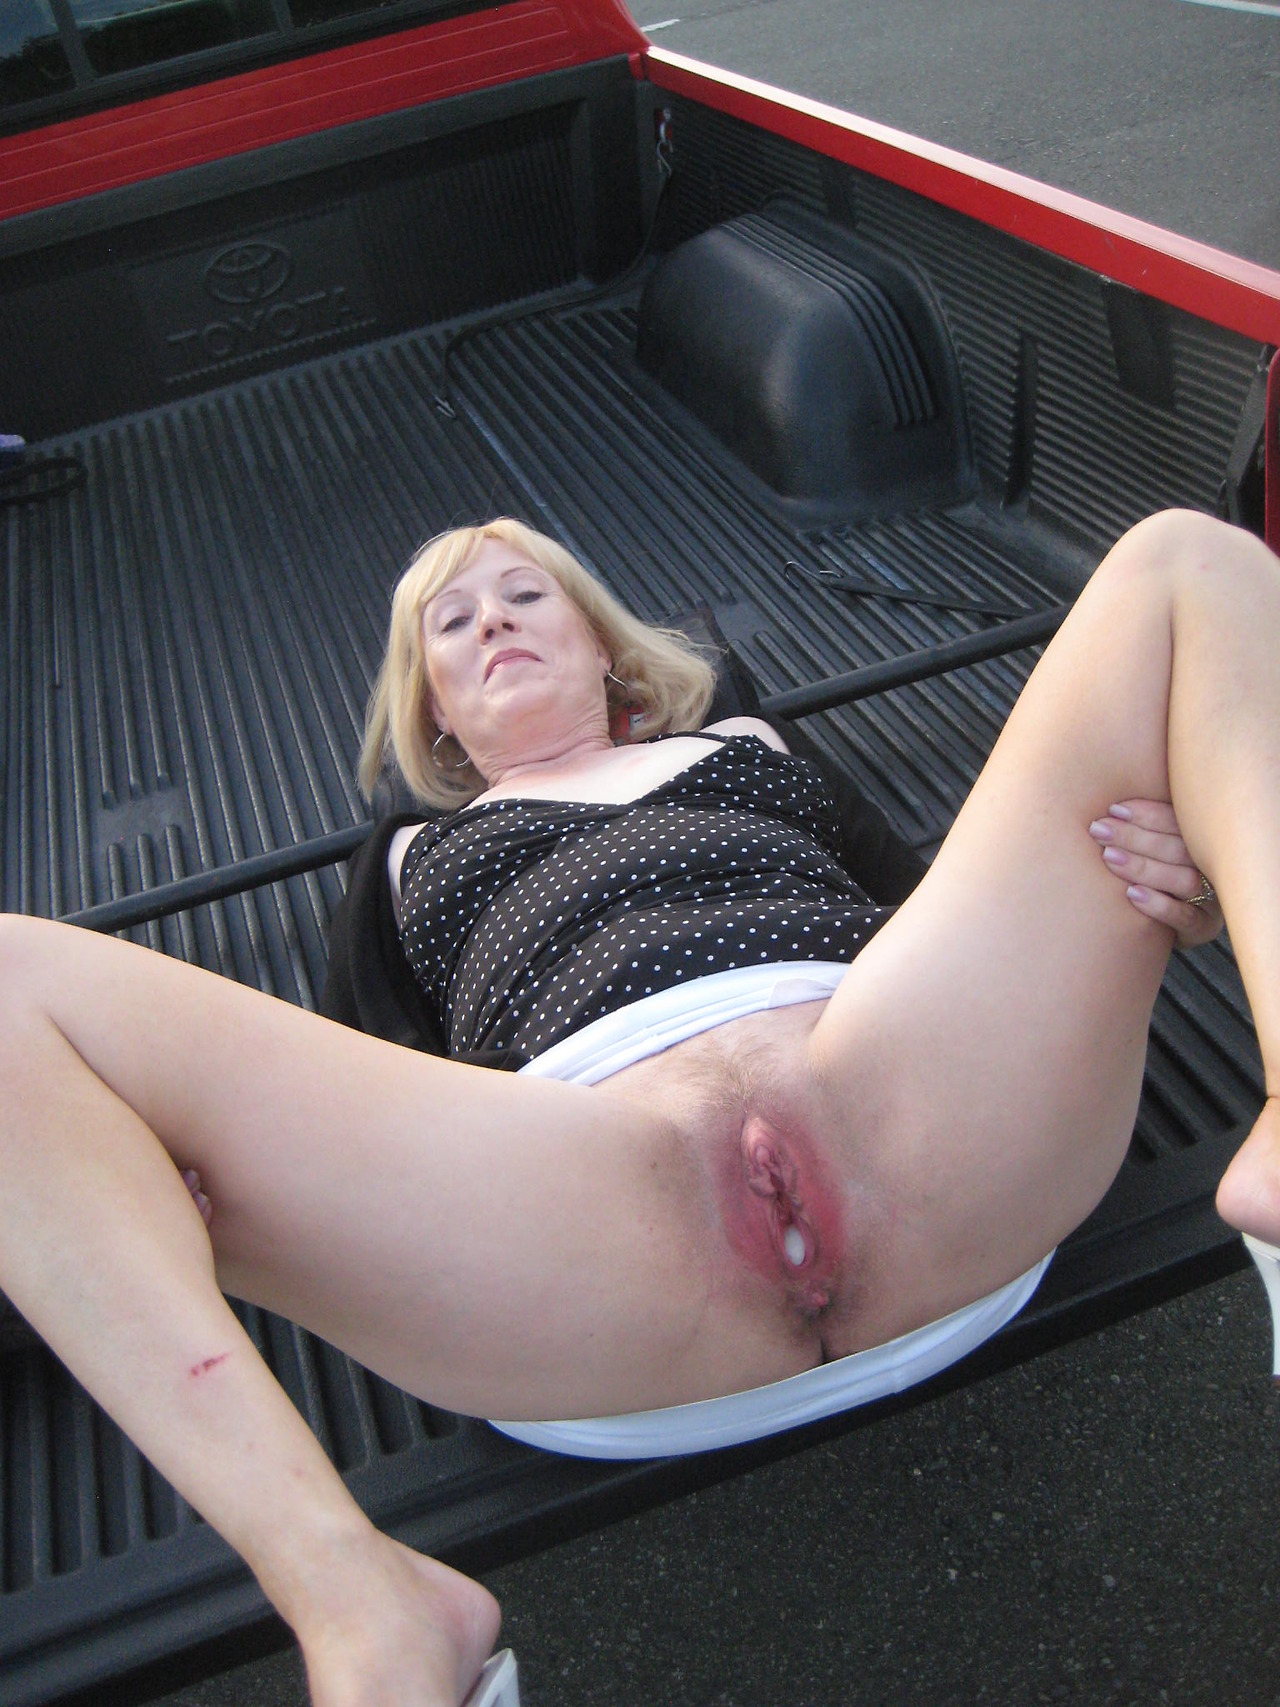 super pussy fun time! with toys! - motherless